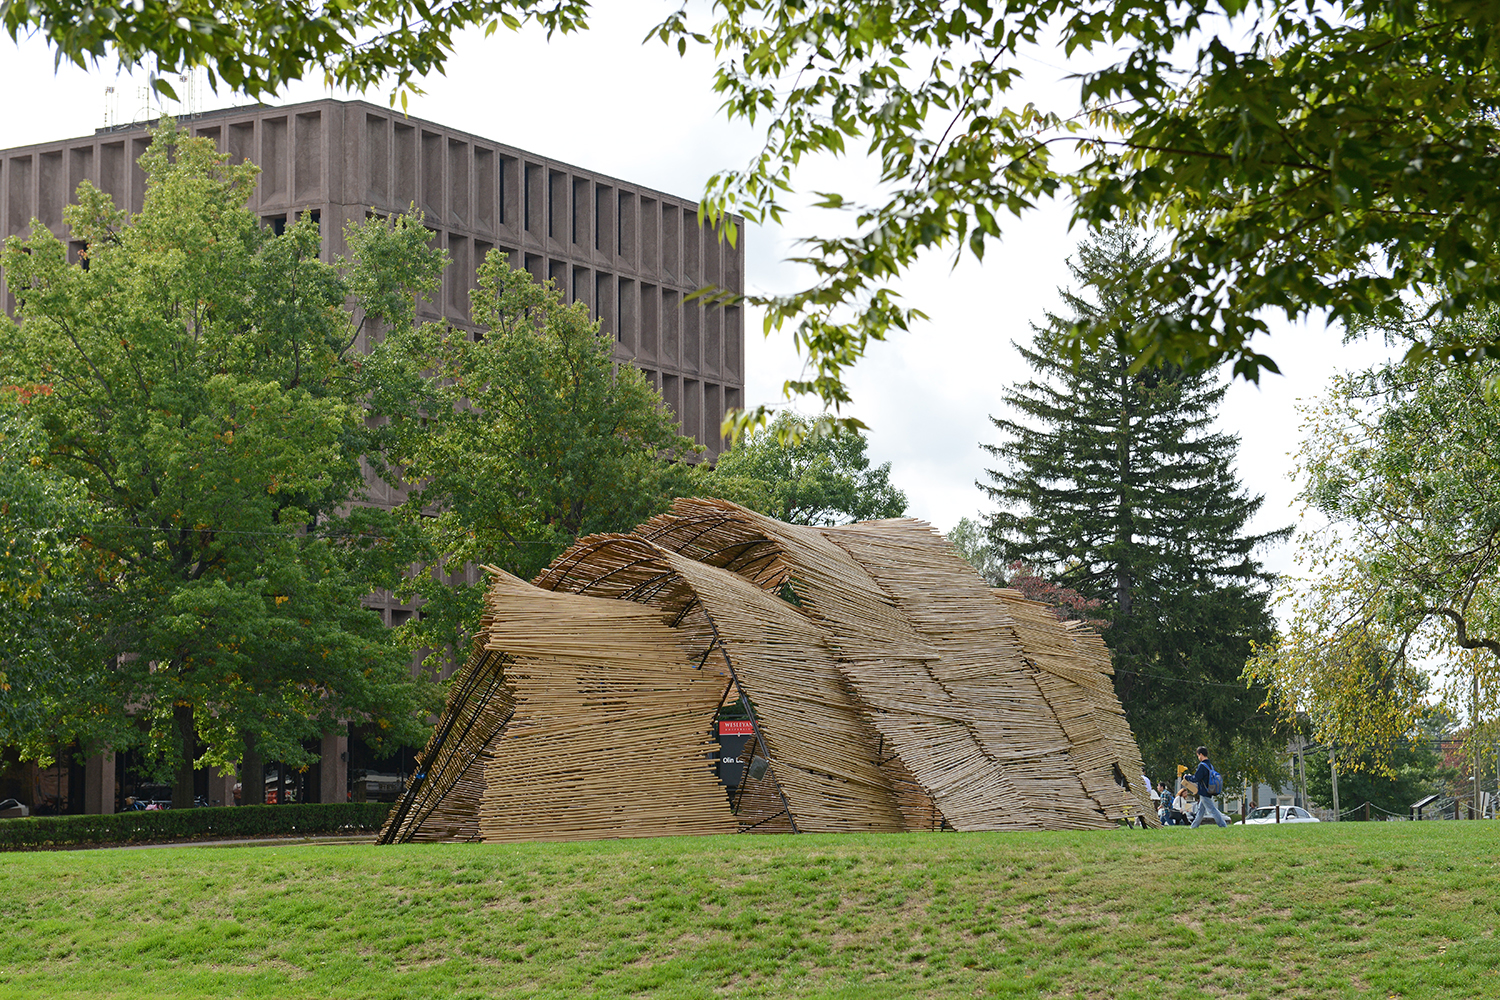 WesSukkah, pictured here on Oct. 7, is a temporary structure located on the lawn of Olin Library.